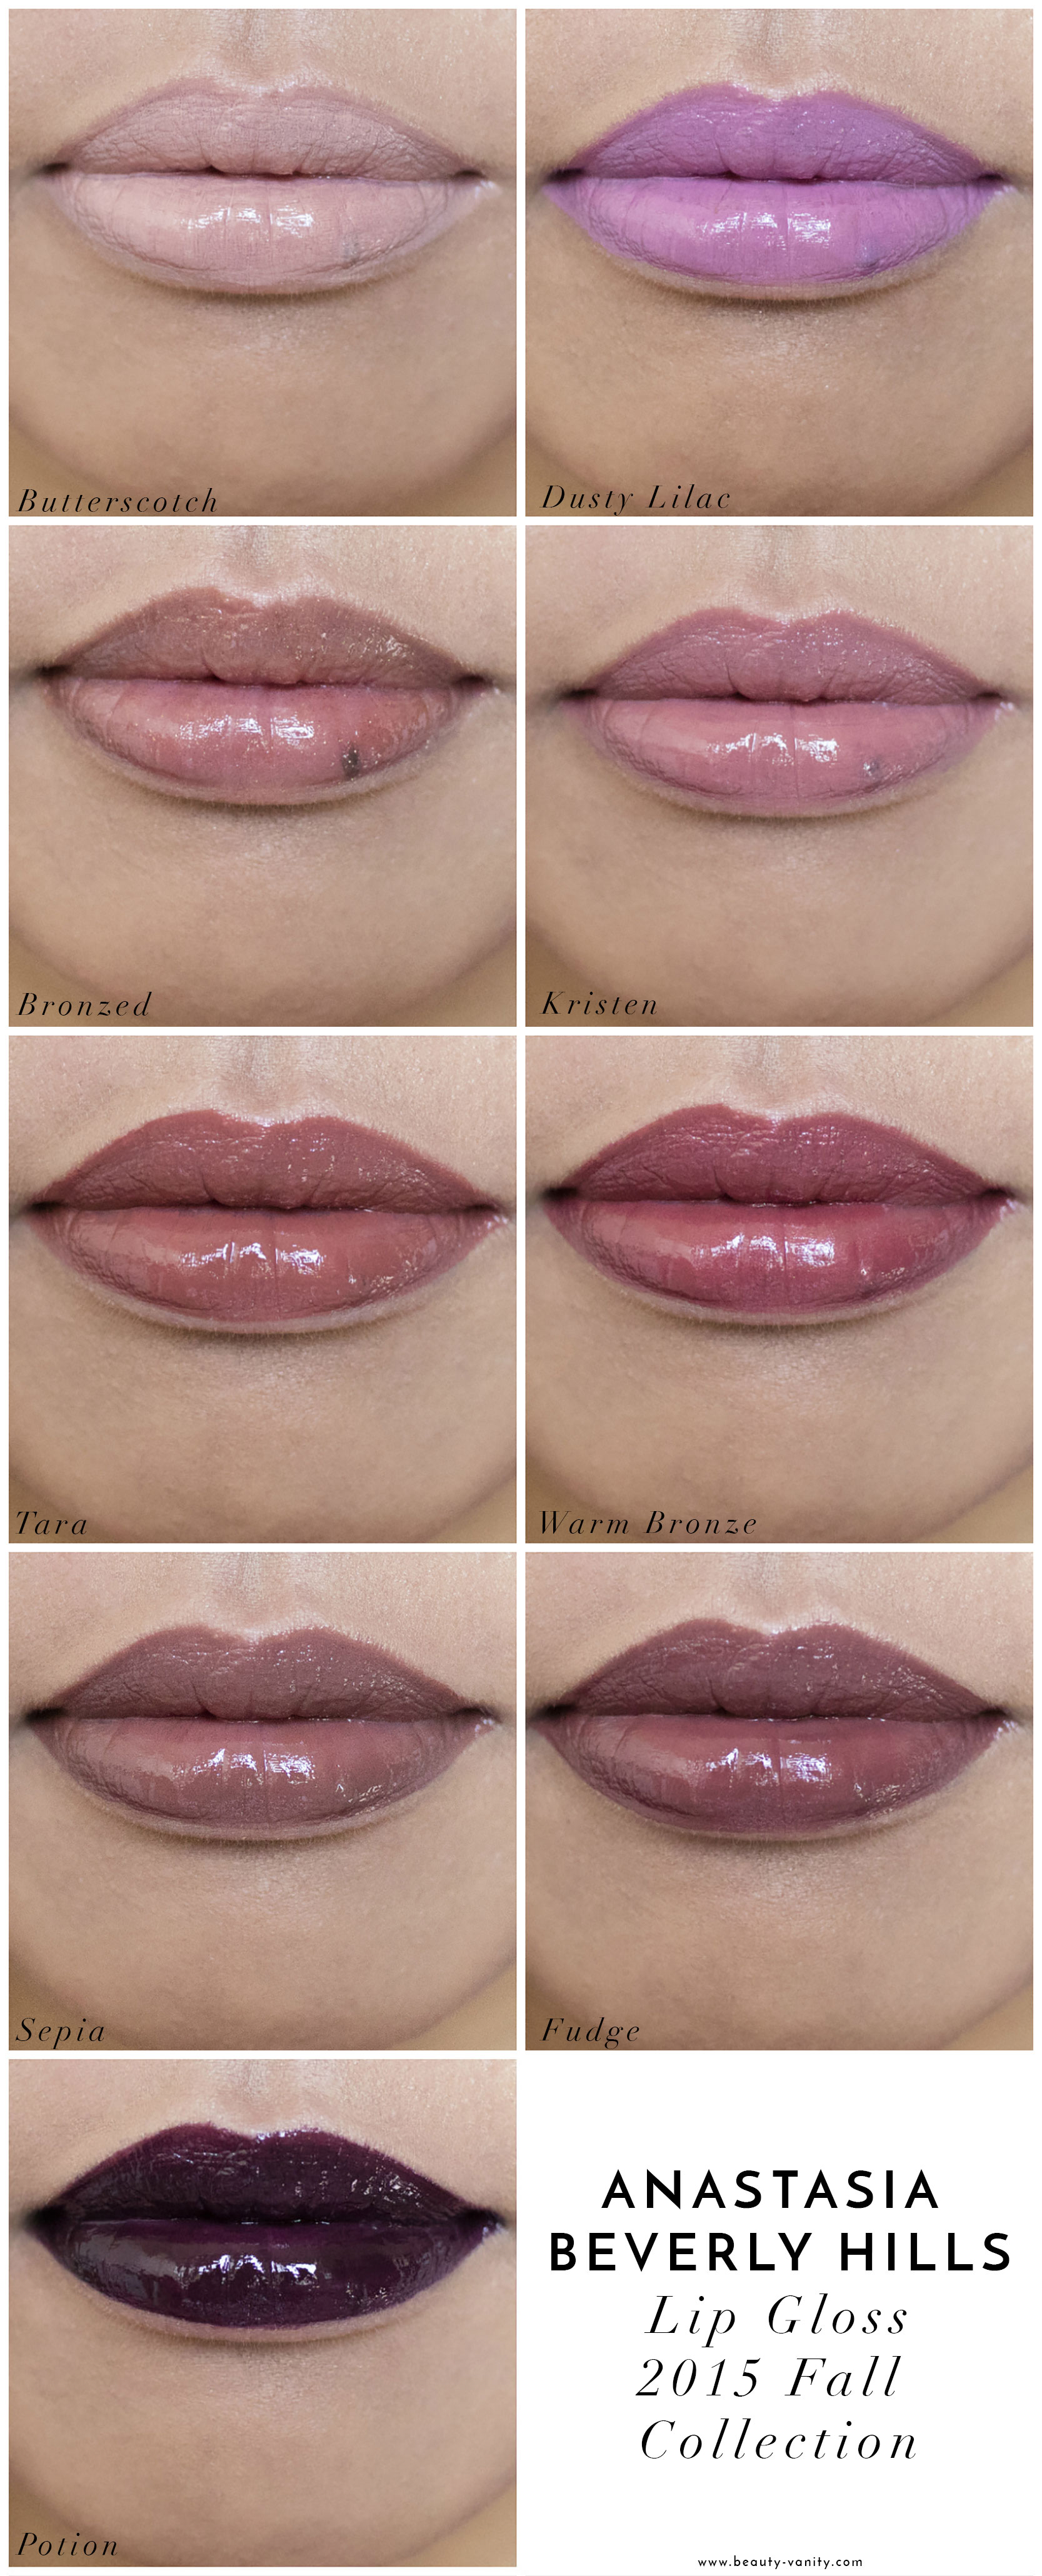 The beauty Vanity | Anastasia Lip Gloss Fall 2015 Swatches Review